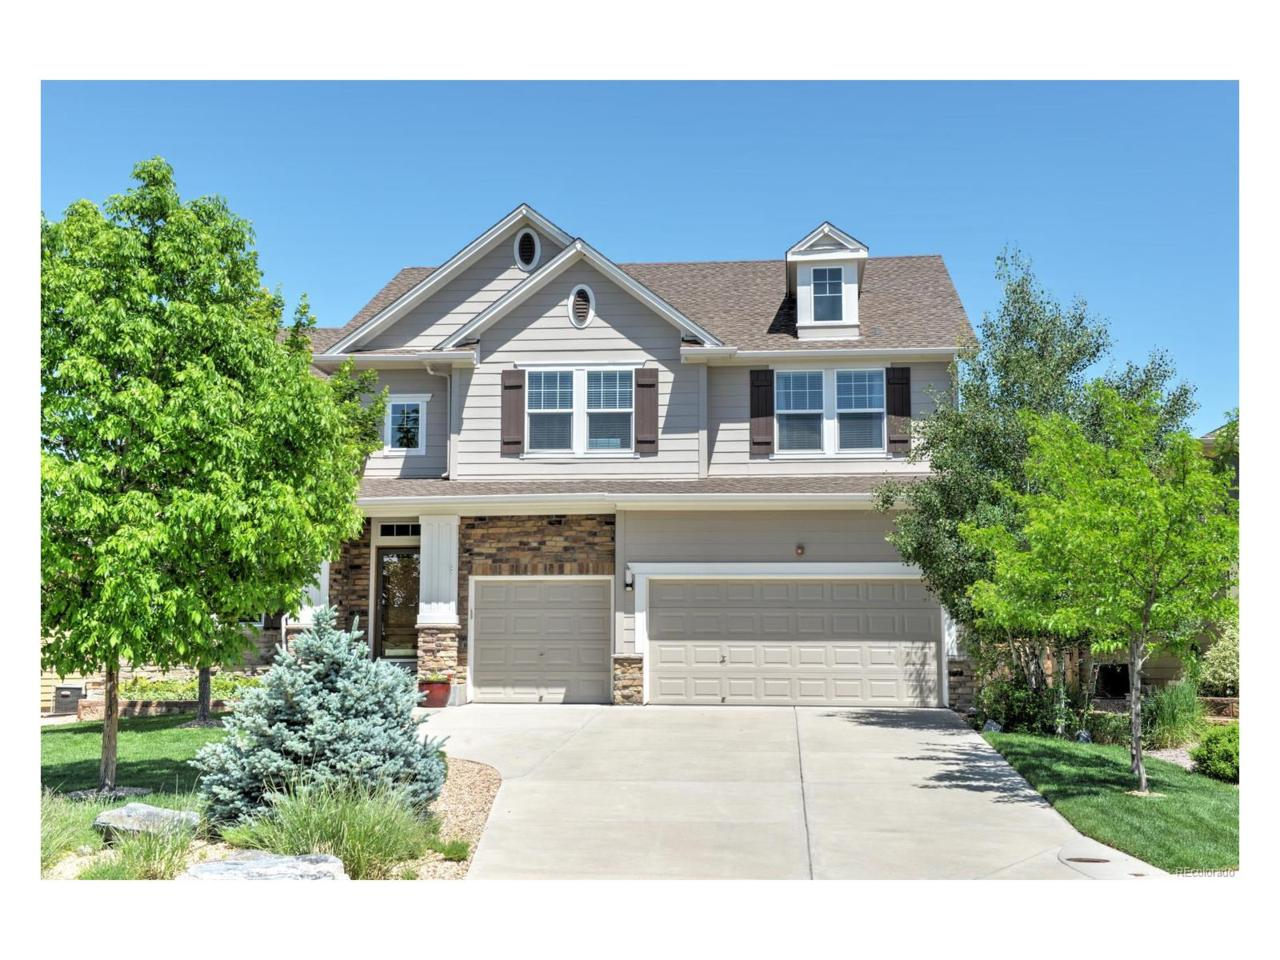 11966 Blackwell Way, Parker, CO 80138 (MLS #8822373) :: 8z Real Estate